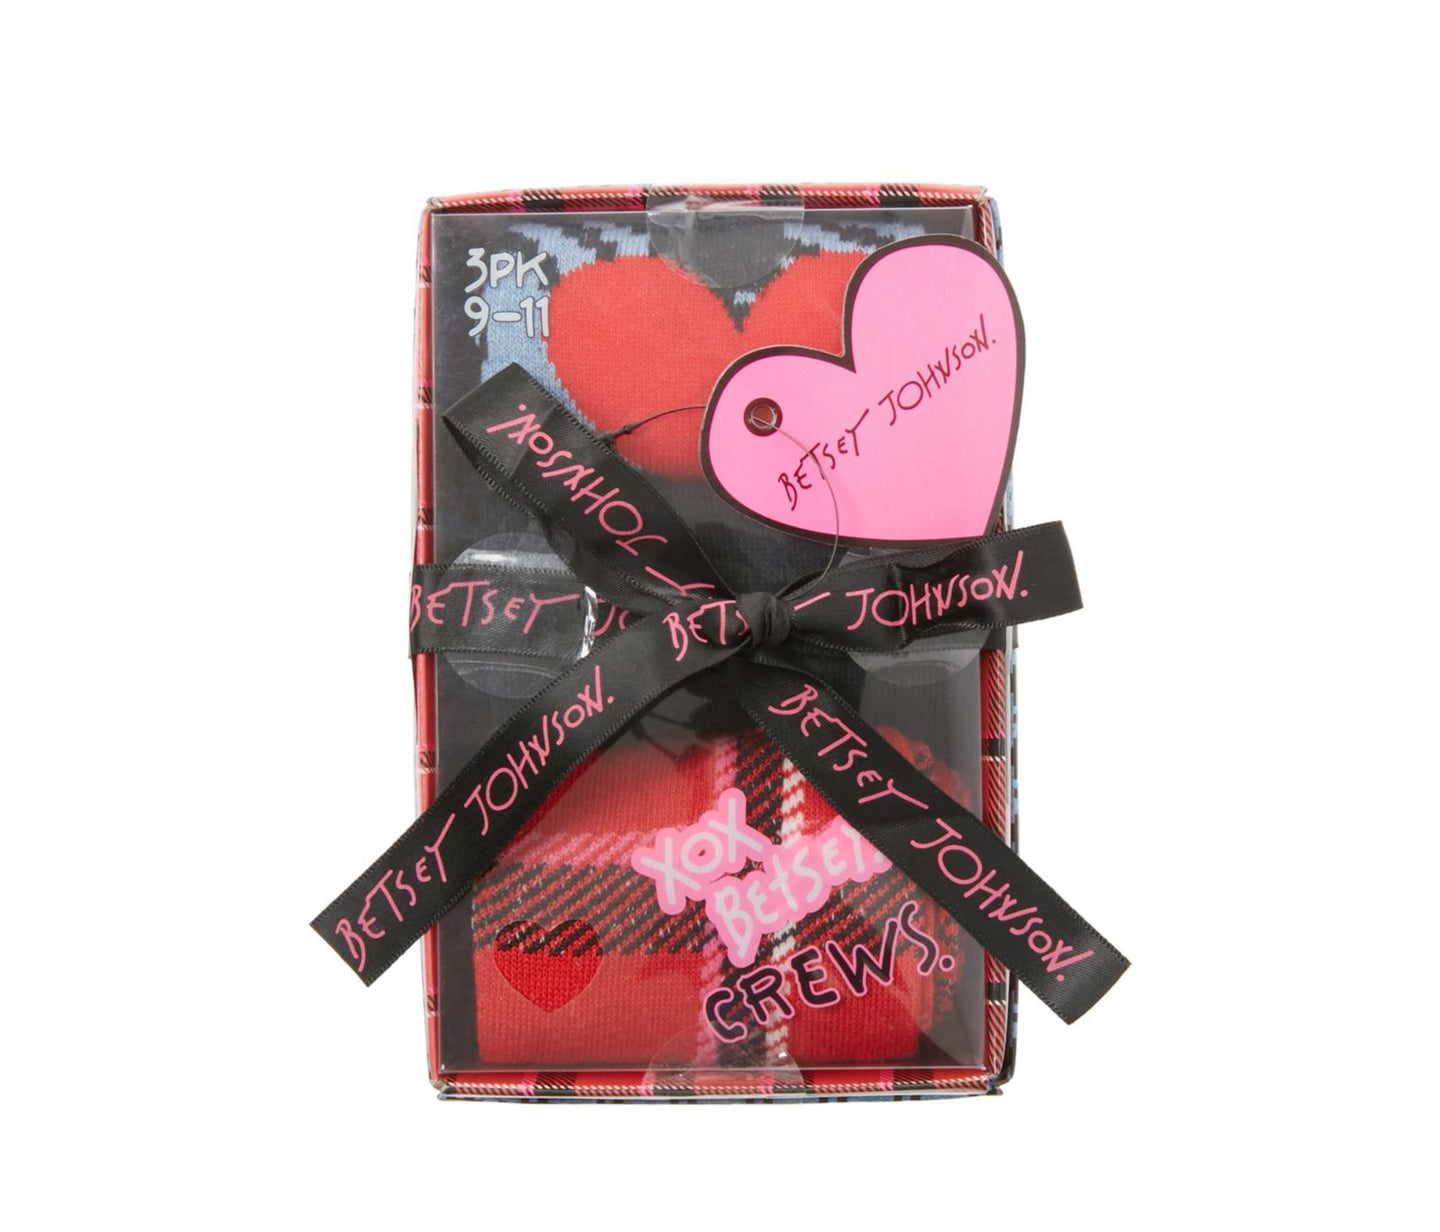 MAD PLAID CREW 3 PACK GIFT BOX MULTI - ACCESSORIES - Betsey Johnson